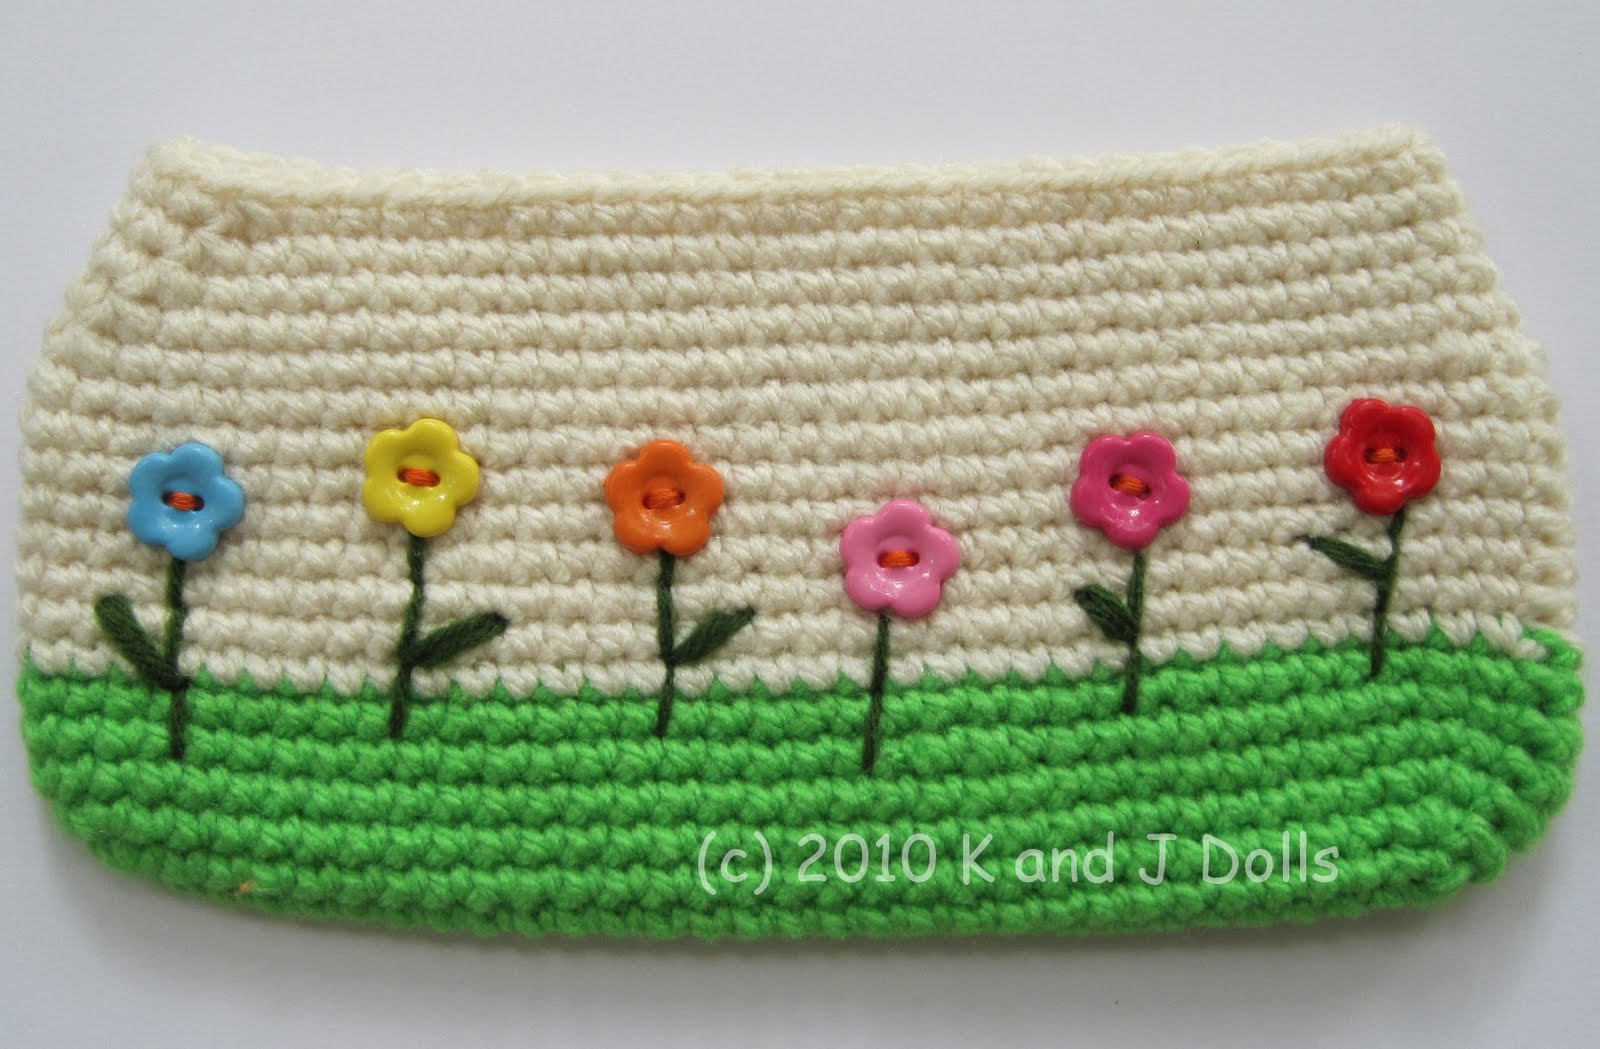 Dr. Jeckyll's Crochet Flower Experiments - Squidoo : Welcome to